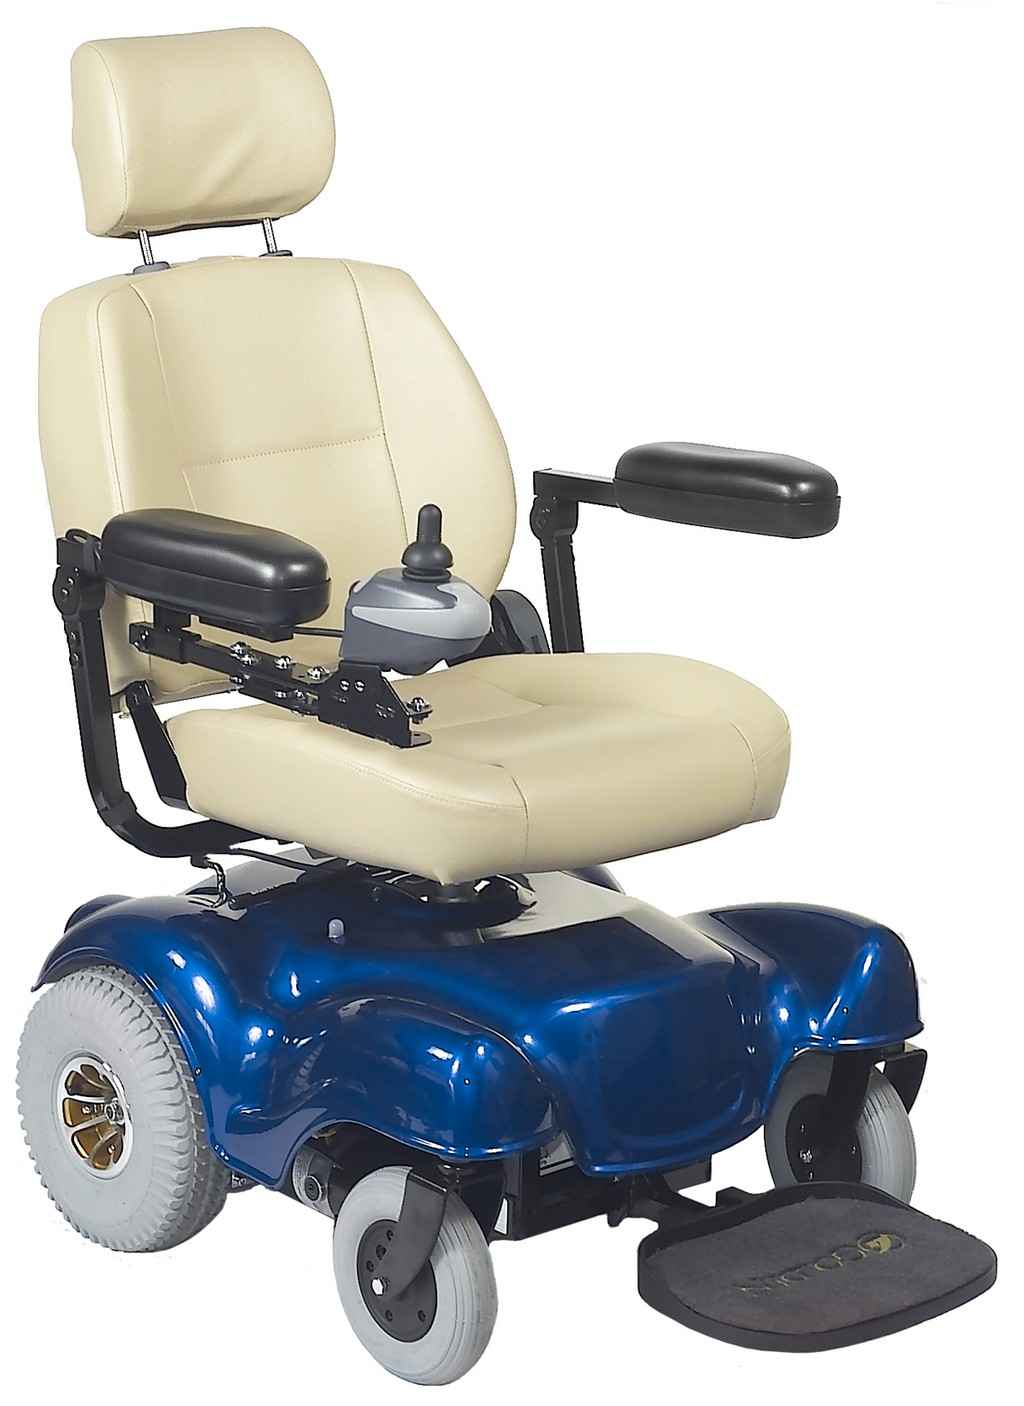 wheel chairs electric, need to buy electric wheel chair, 1nvacare electric wheel chair, electric wheel chair batterys deep cycle